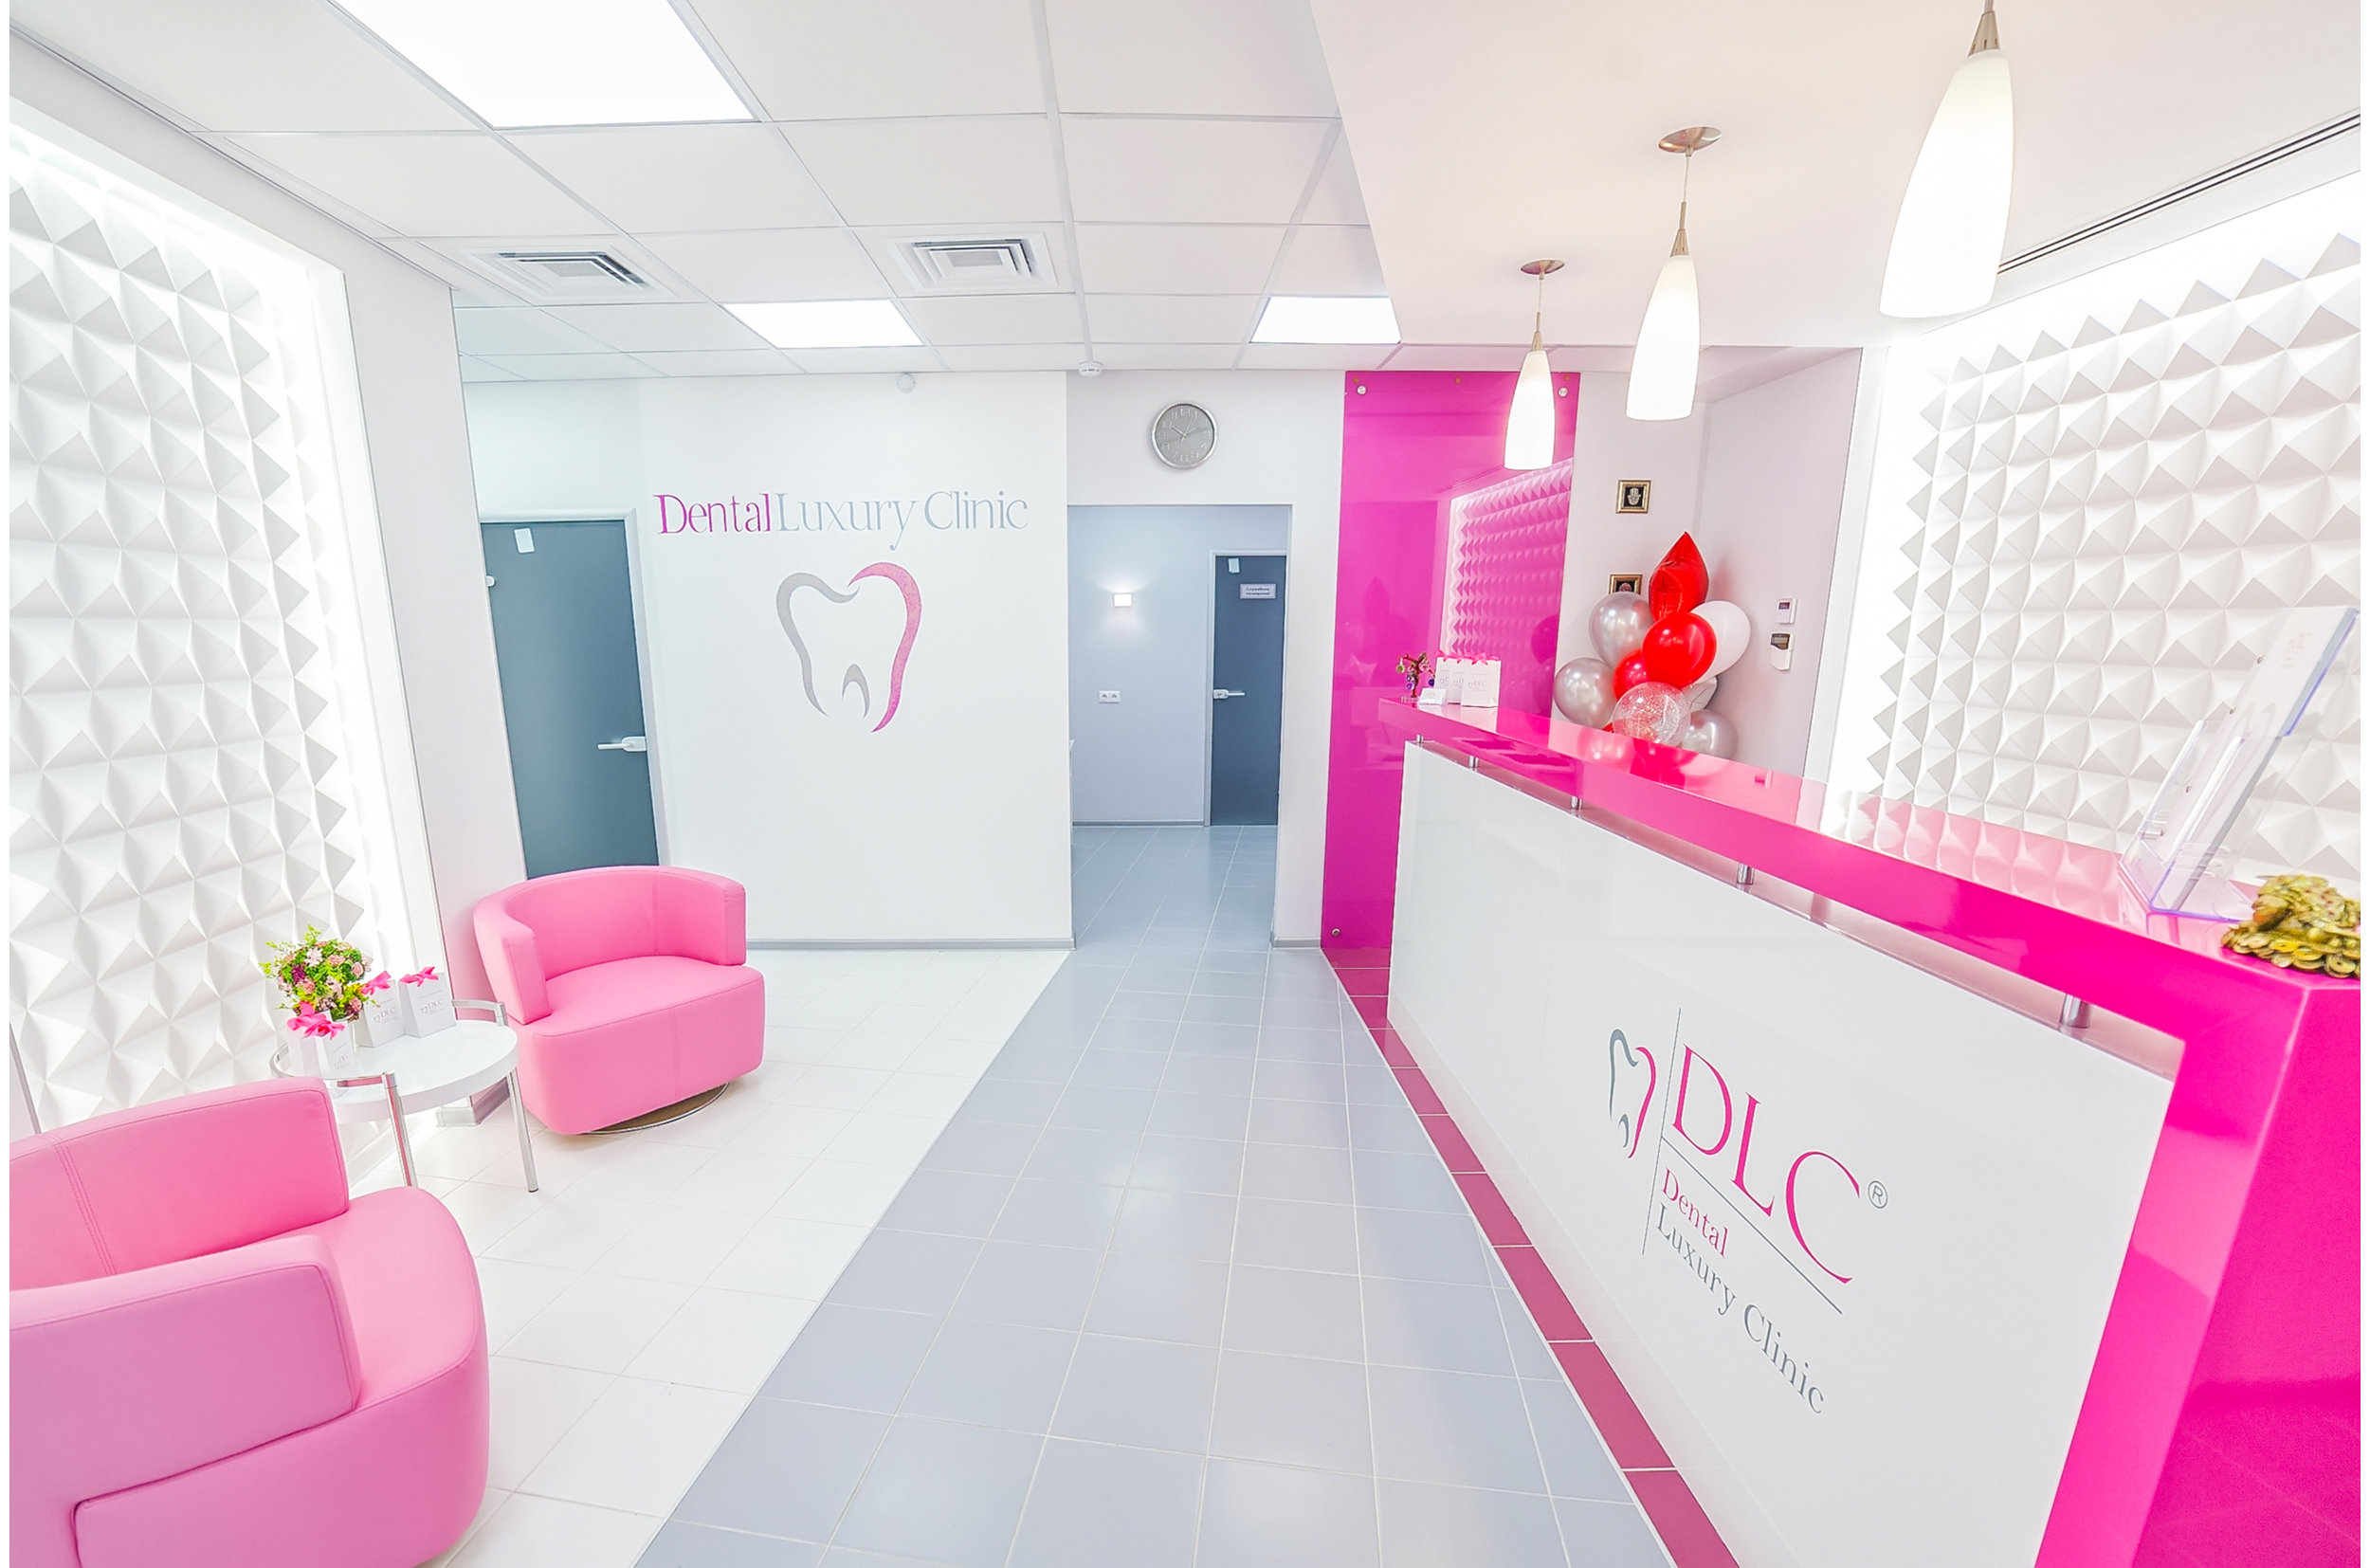 Dental practice reception area interior